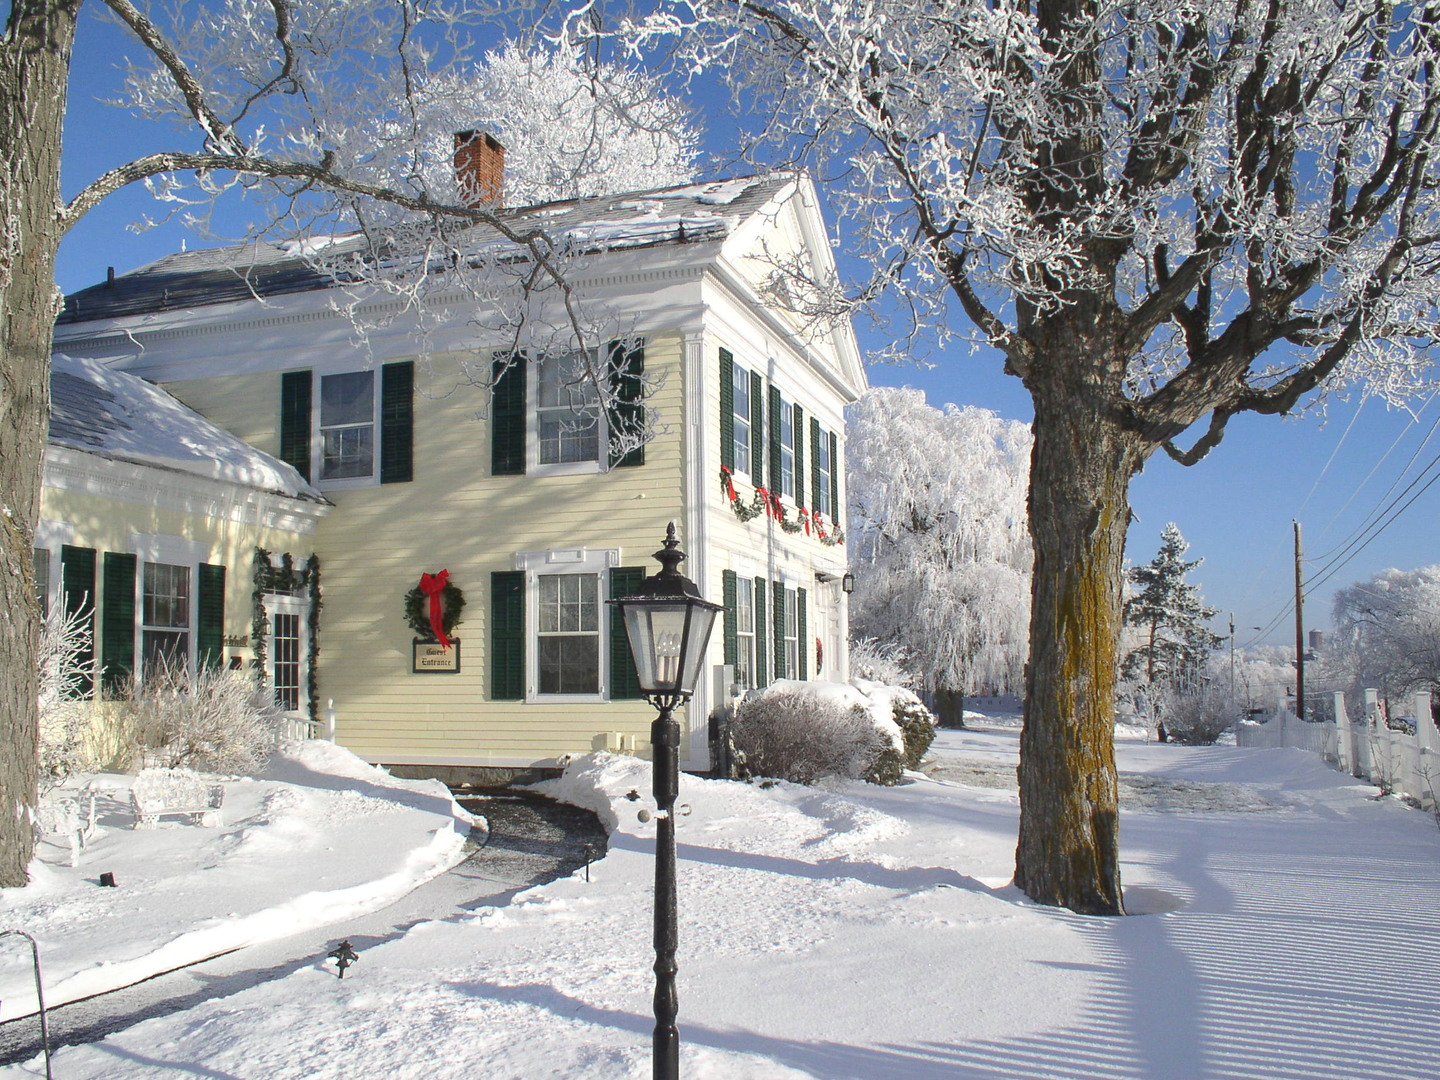 A house covered in snow at Strong House Inn.